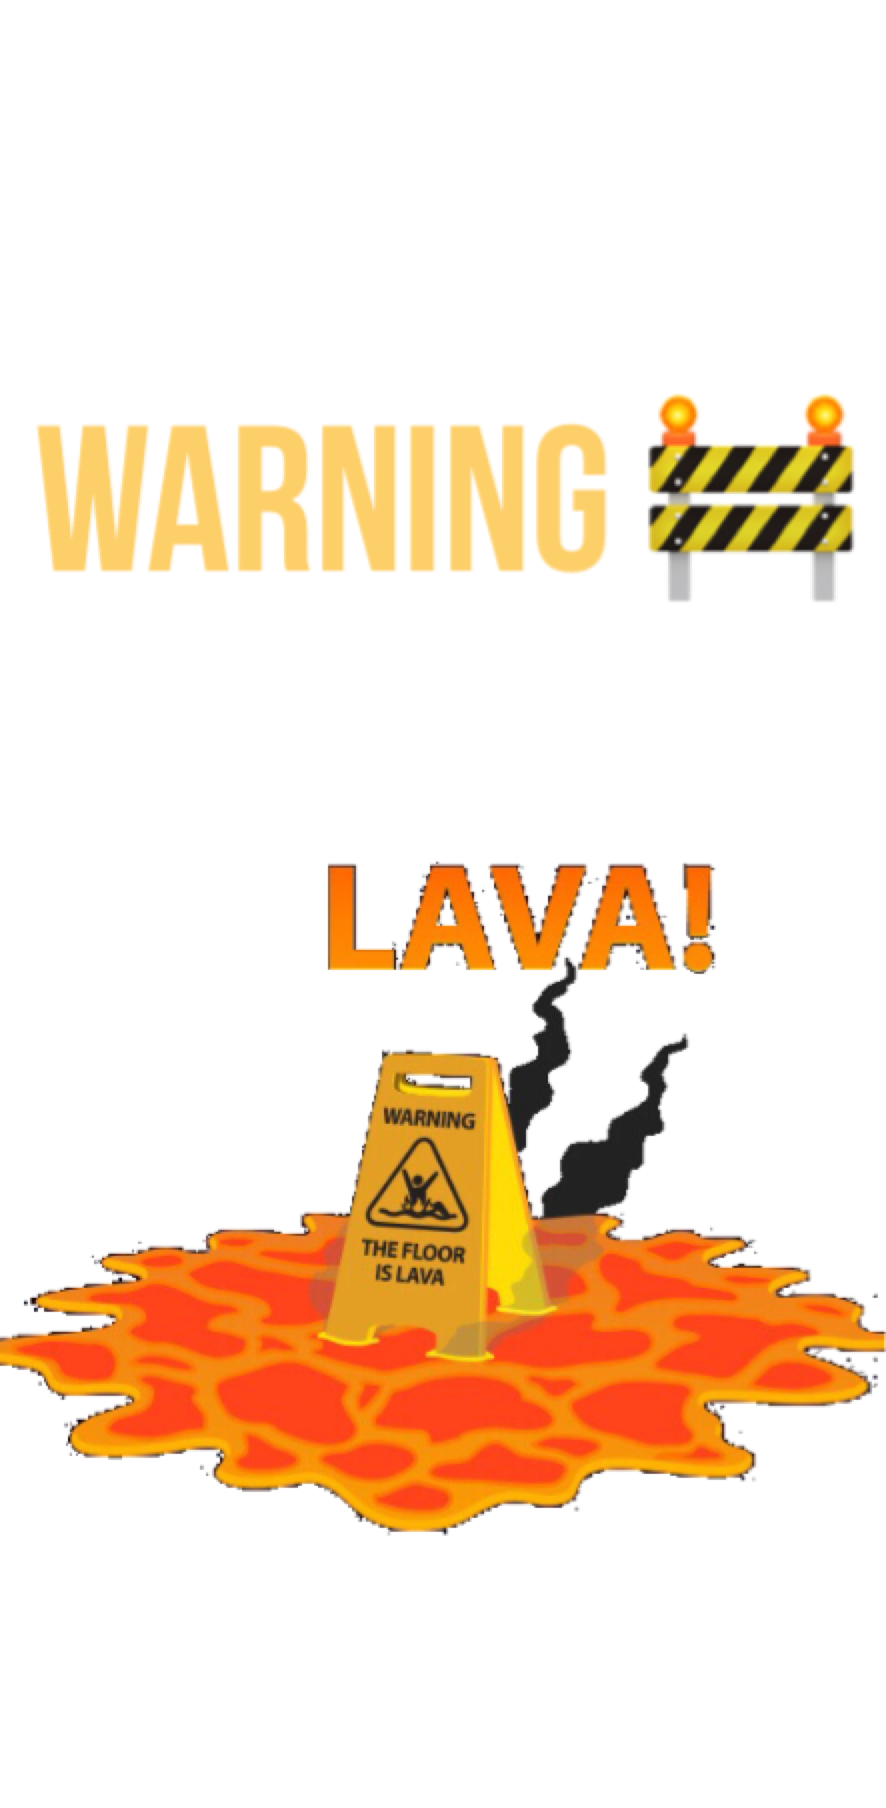 cover the floor is lava